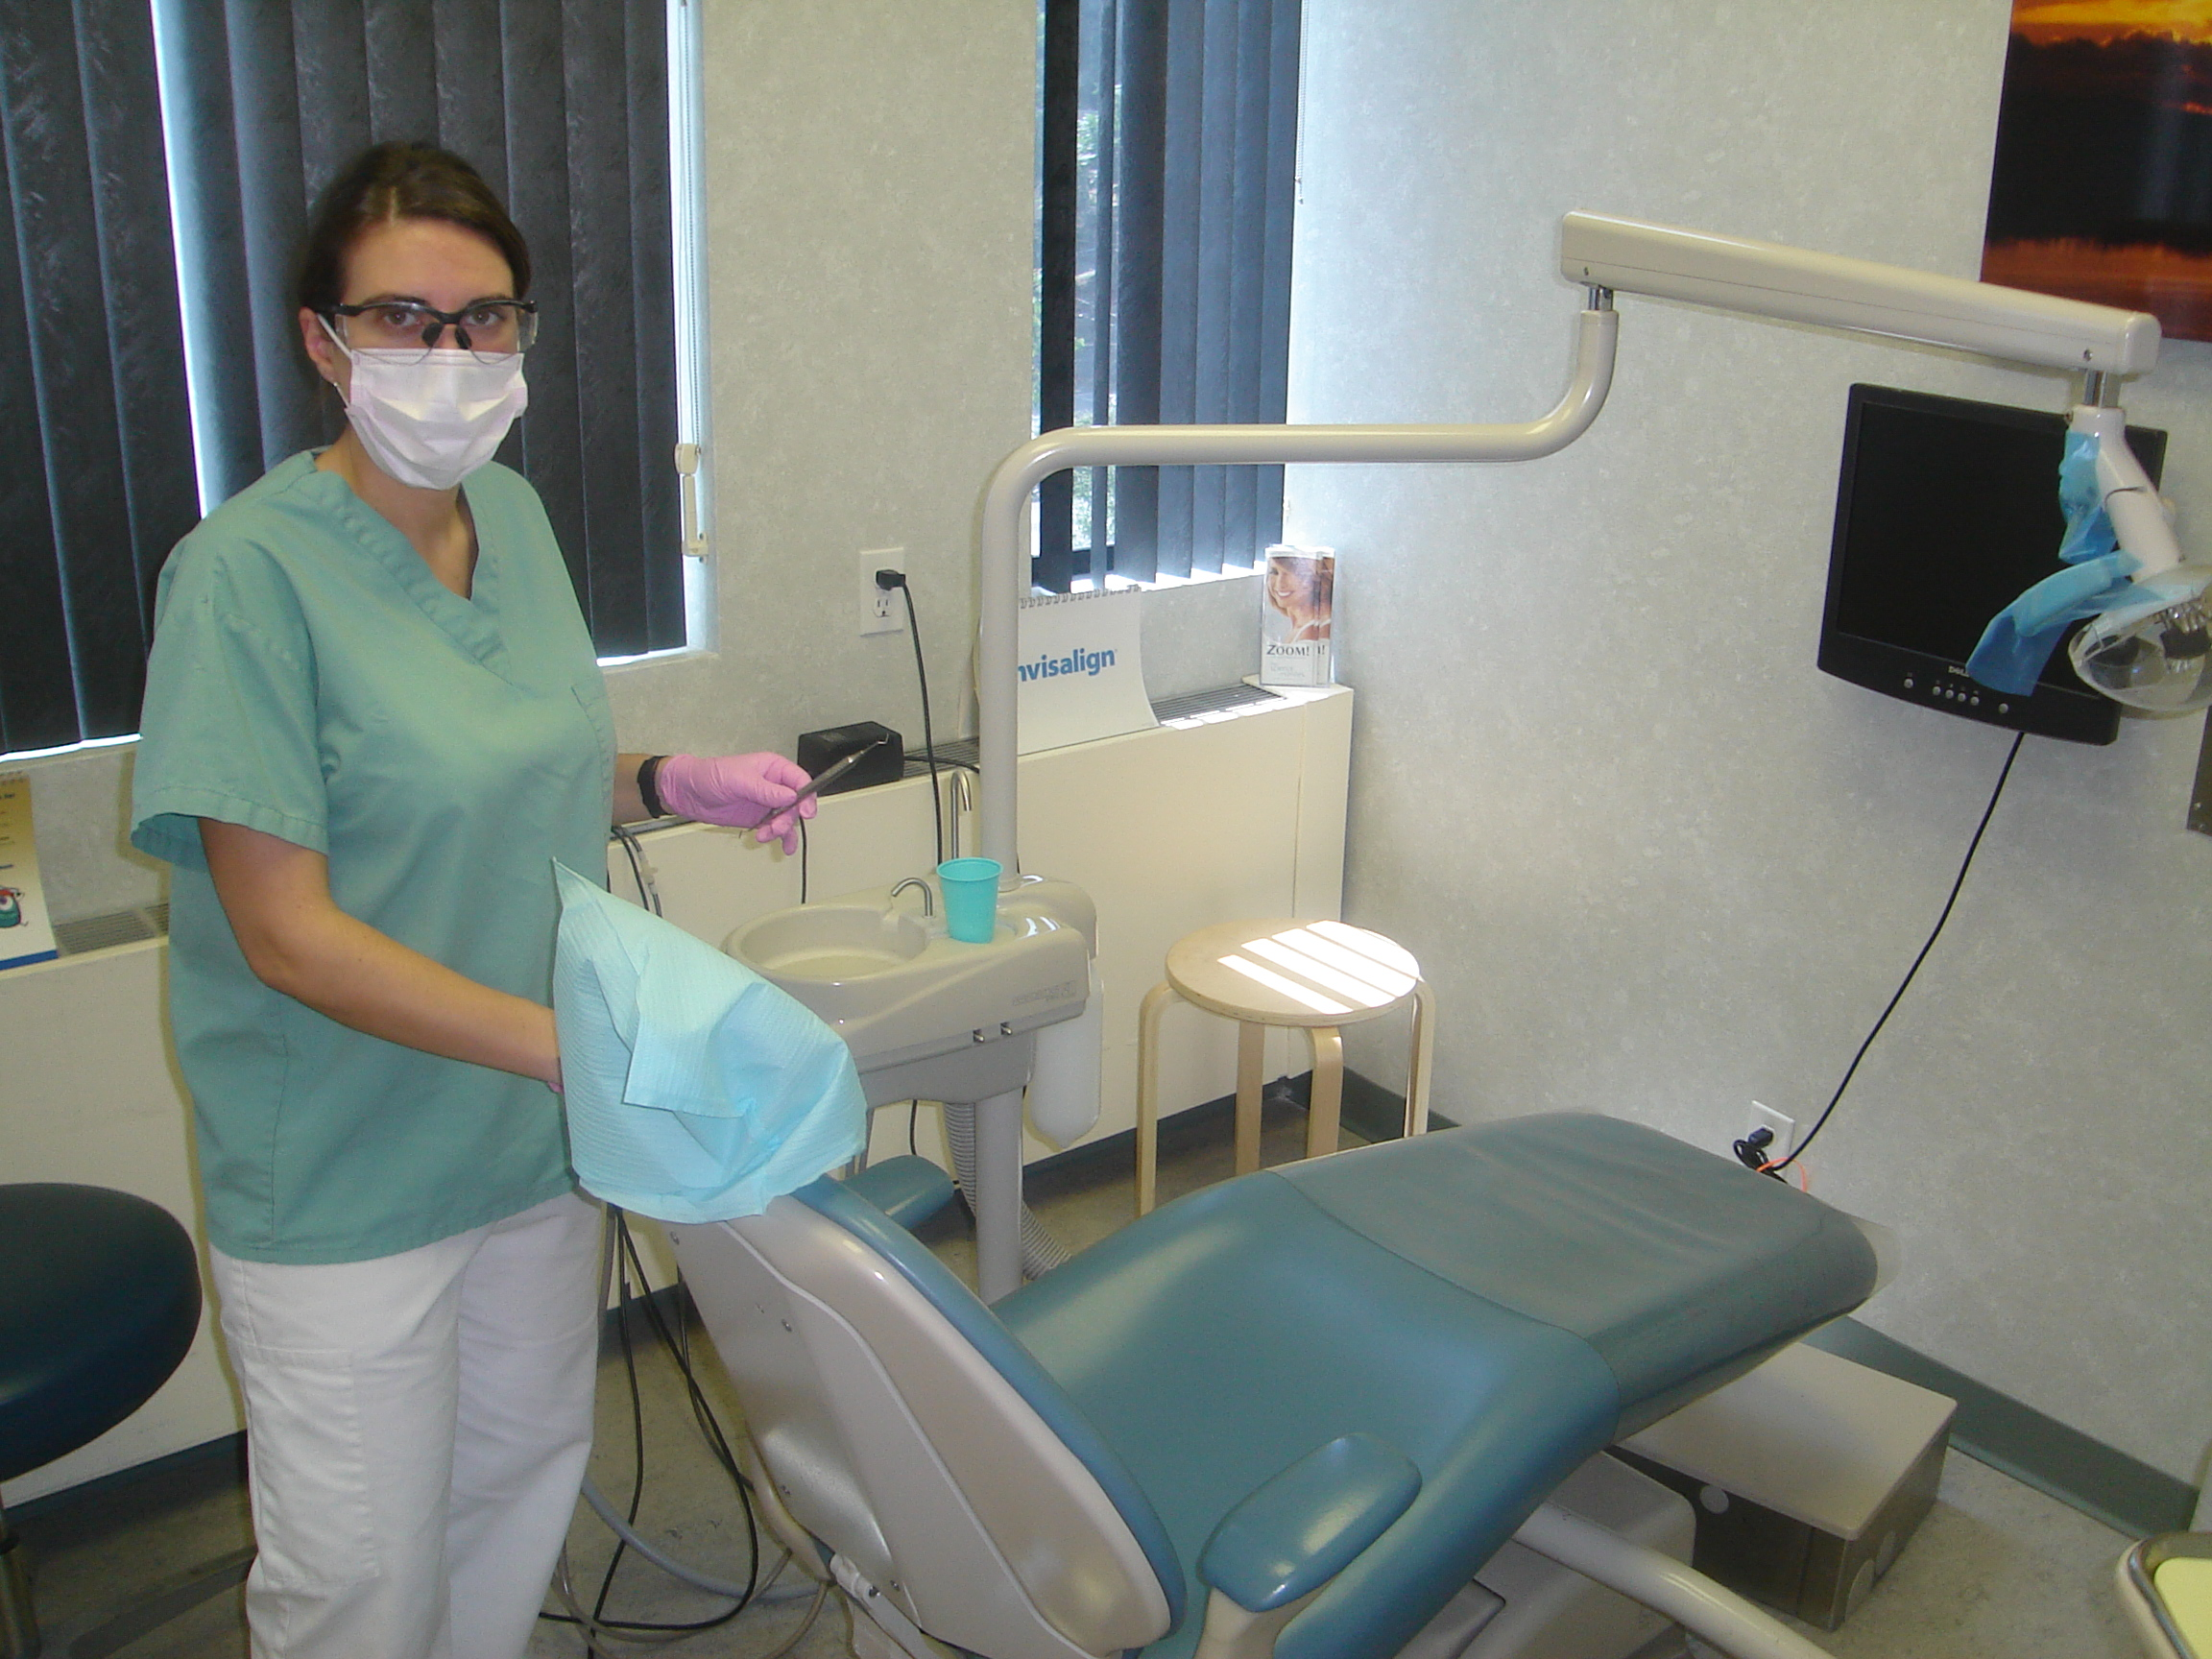 dental hygienists Get info on dental hygienist education and salary learn how to become a dental  hygienist and read what you'll do on the job everyday.